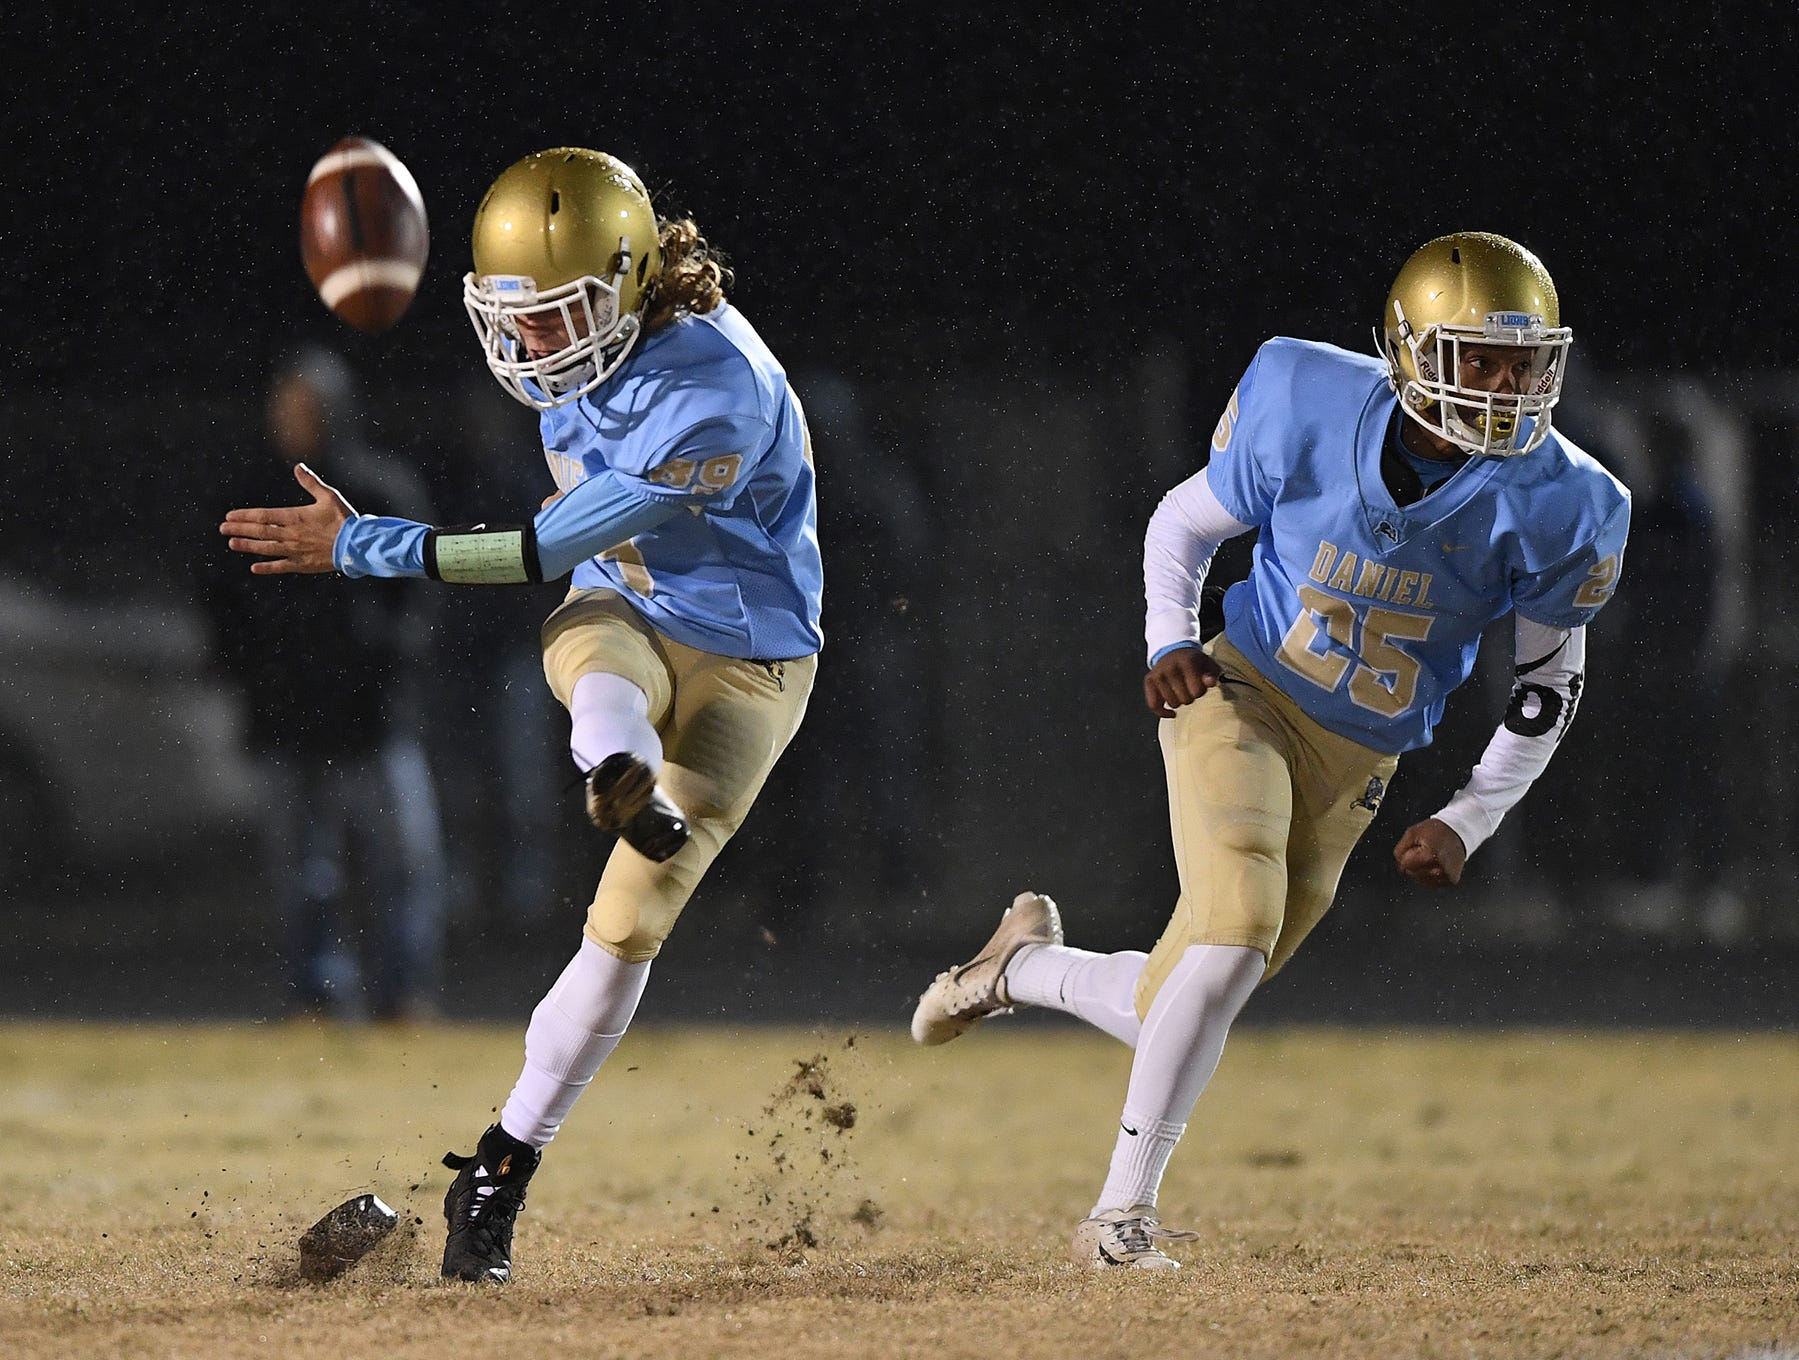 Daniel's Clay Mohr (89) kicks off to Wren during the third round of the class AAAA playoffs Friday, November 23, 2018, at Daniel High in Central.